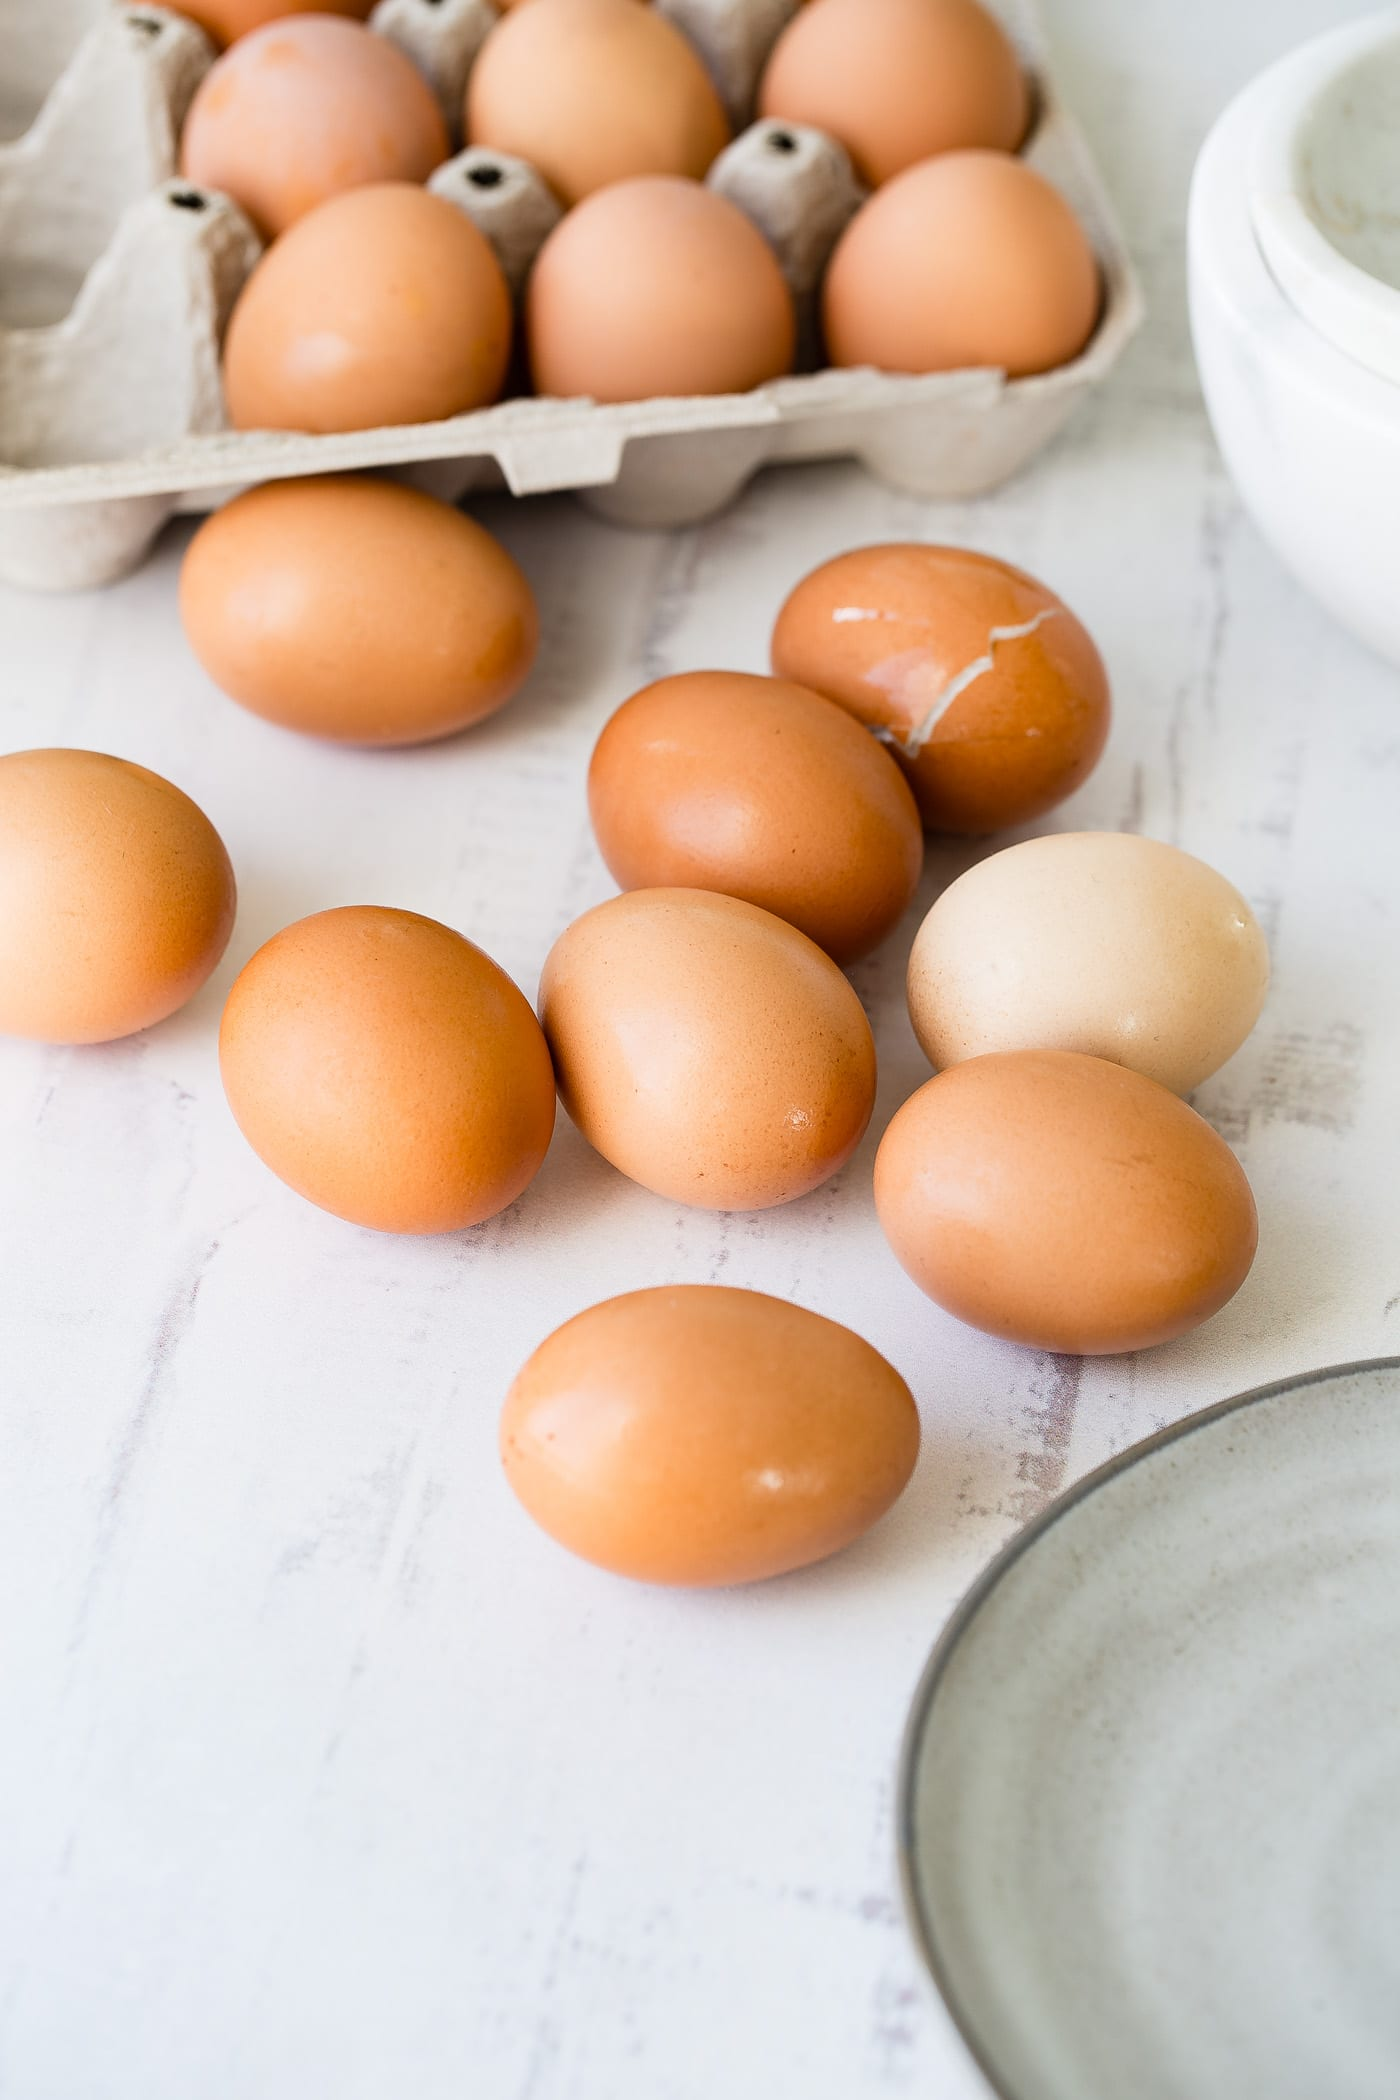 Nine brown eggs laying on a counter top with a carton of brown eggs in the background.